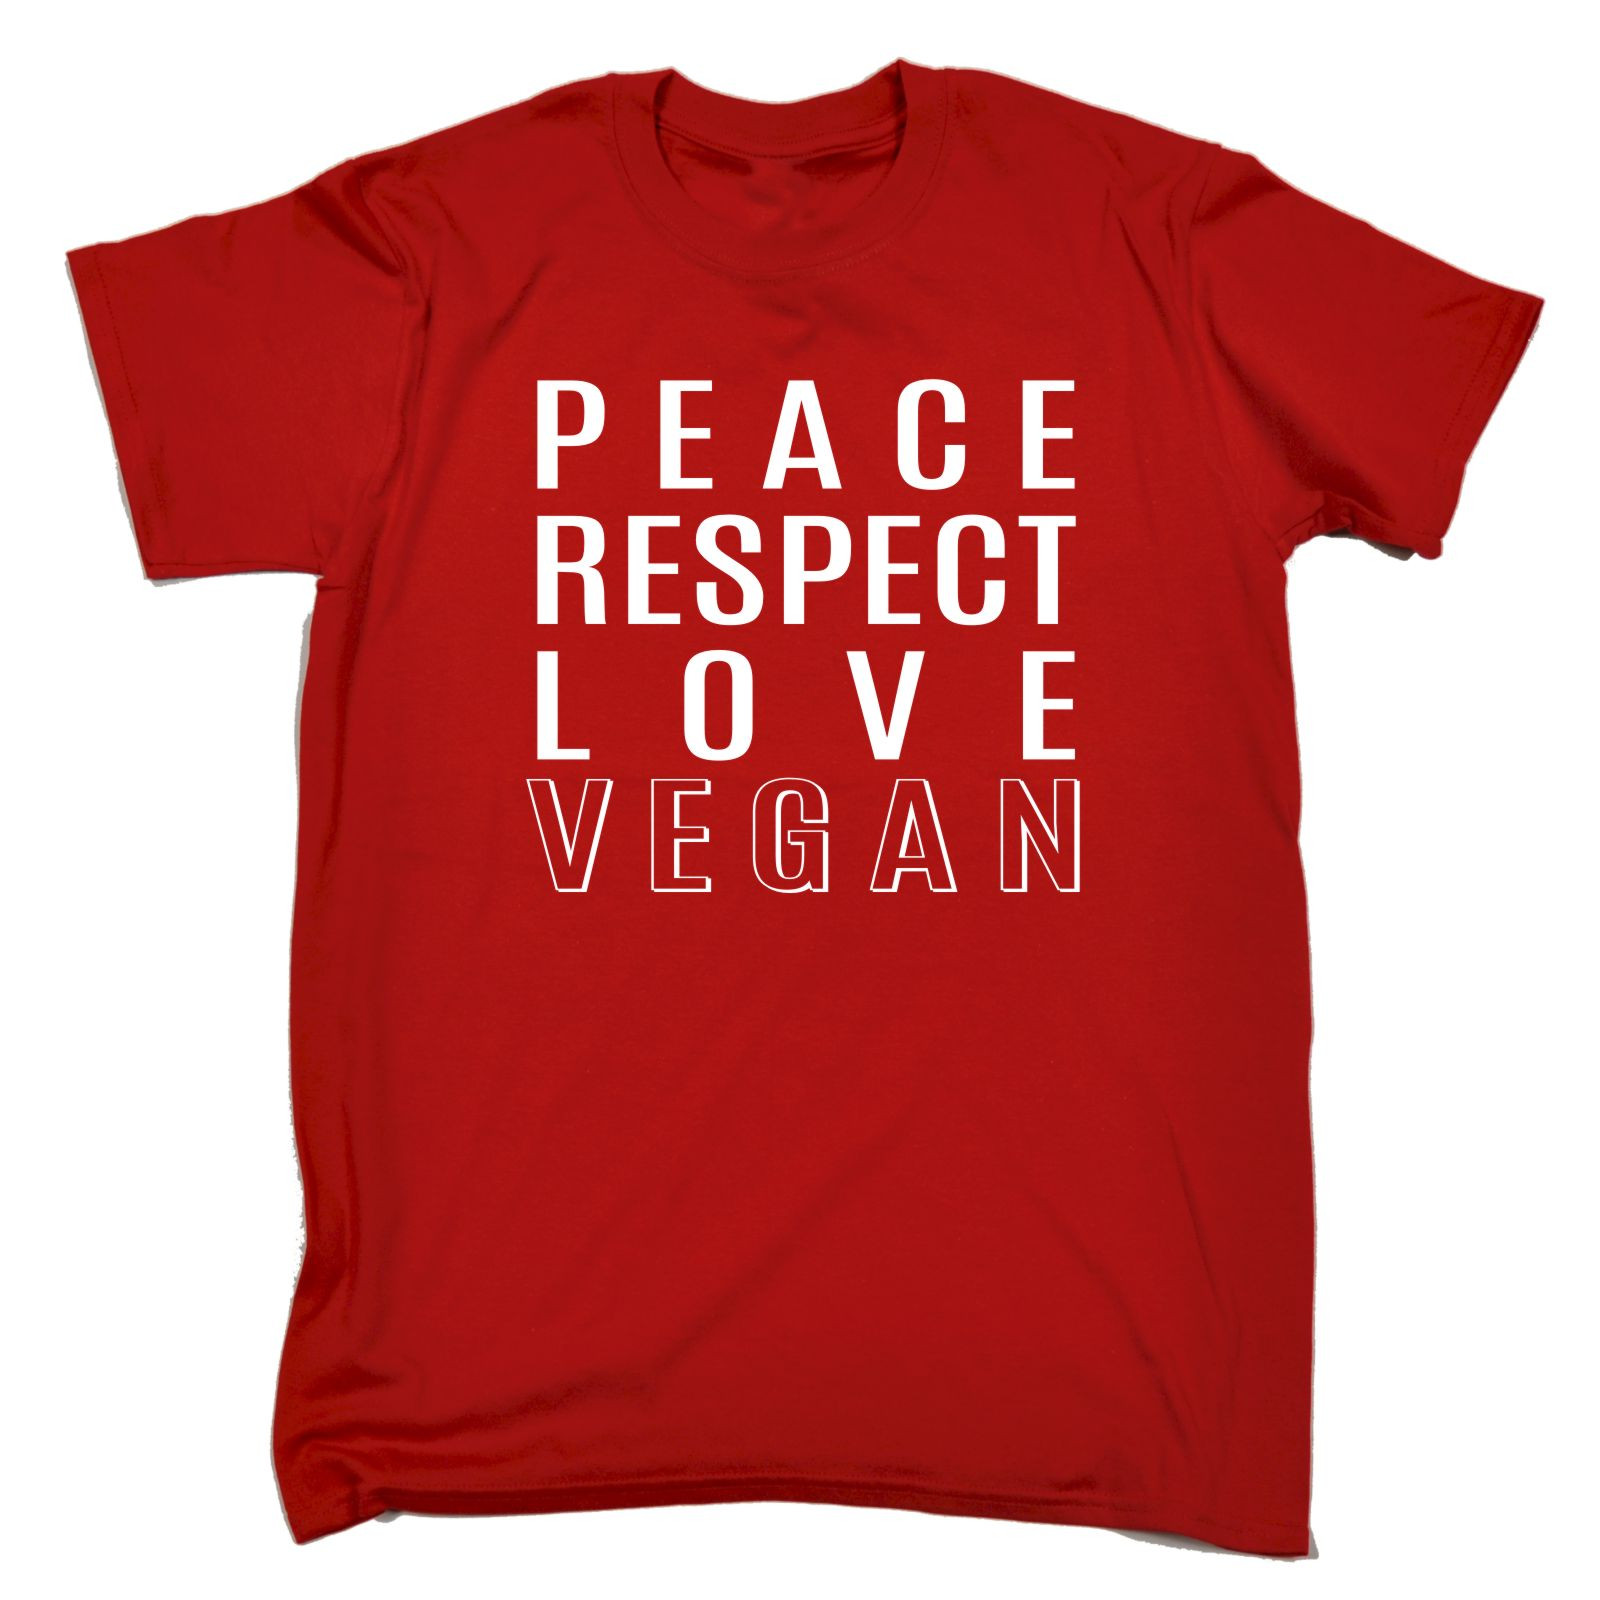 PEACE RESPECT LOVE VEGAN T SHIRT Vegan Vegetarian Hippie Hipster Birthday Gift Loose Cotton Shirts For Men Cool Tops In From Mens